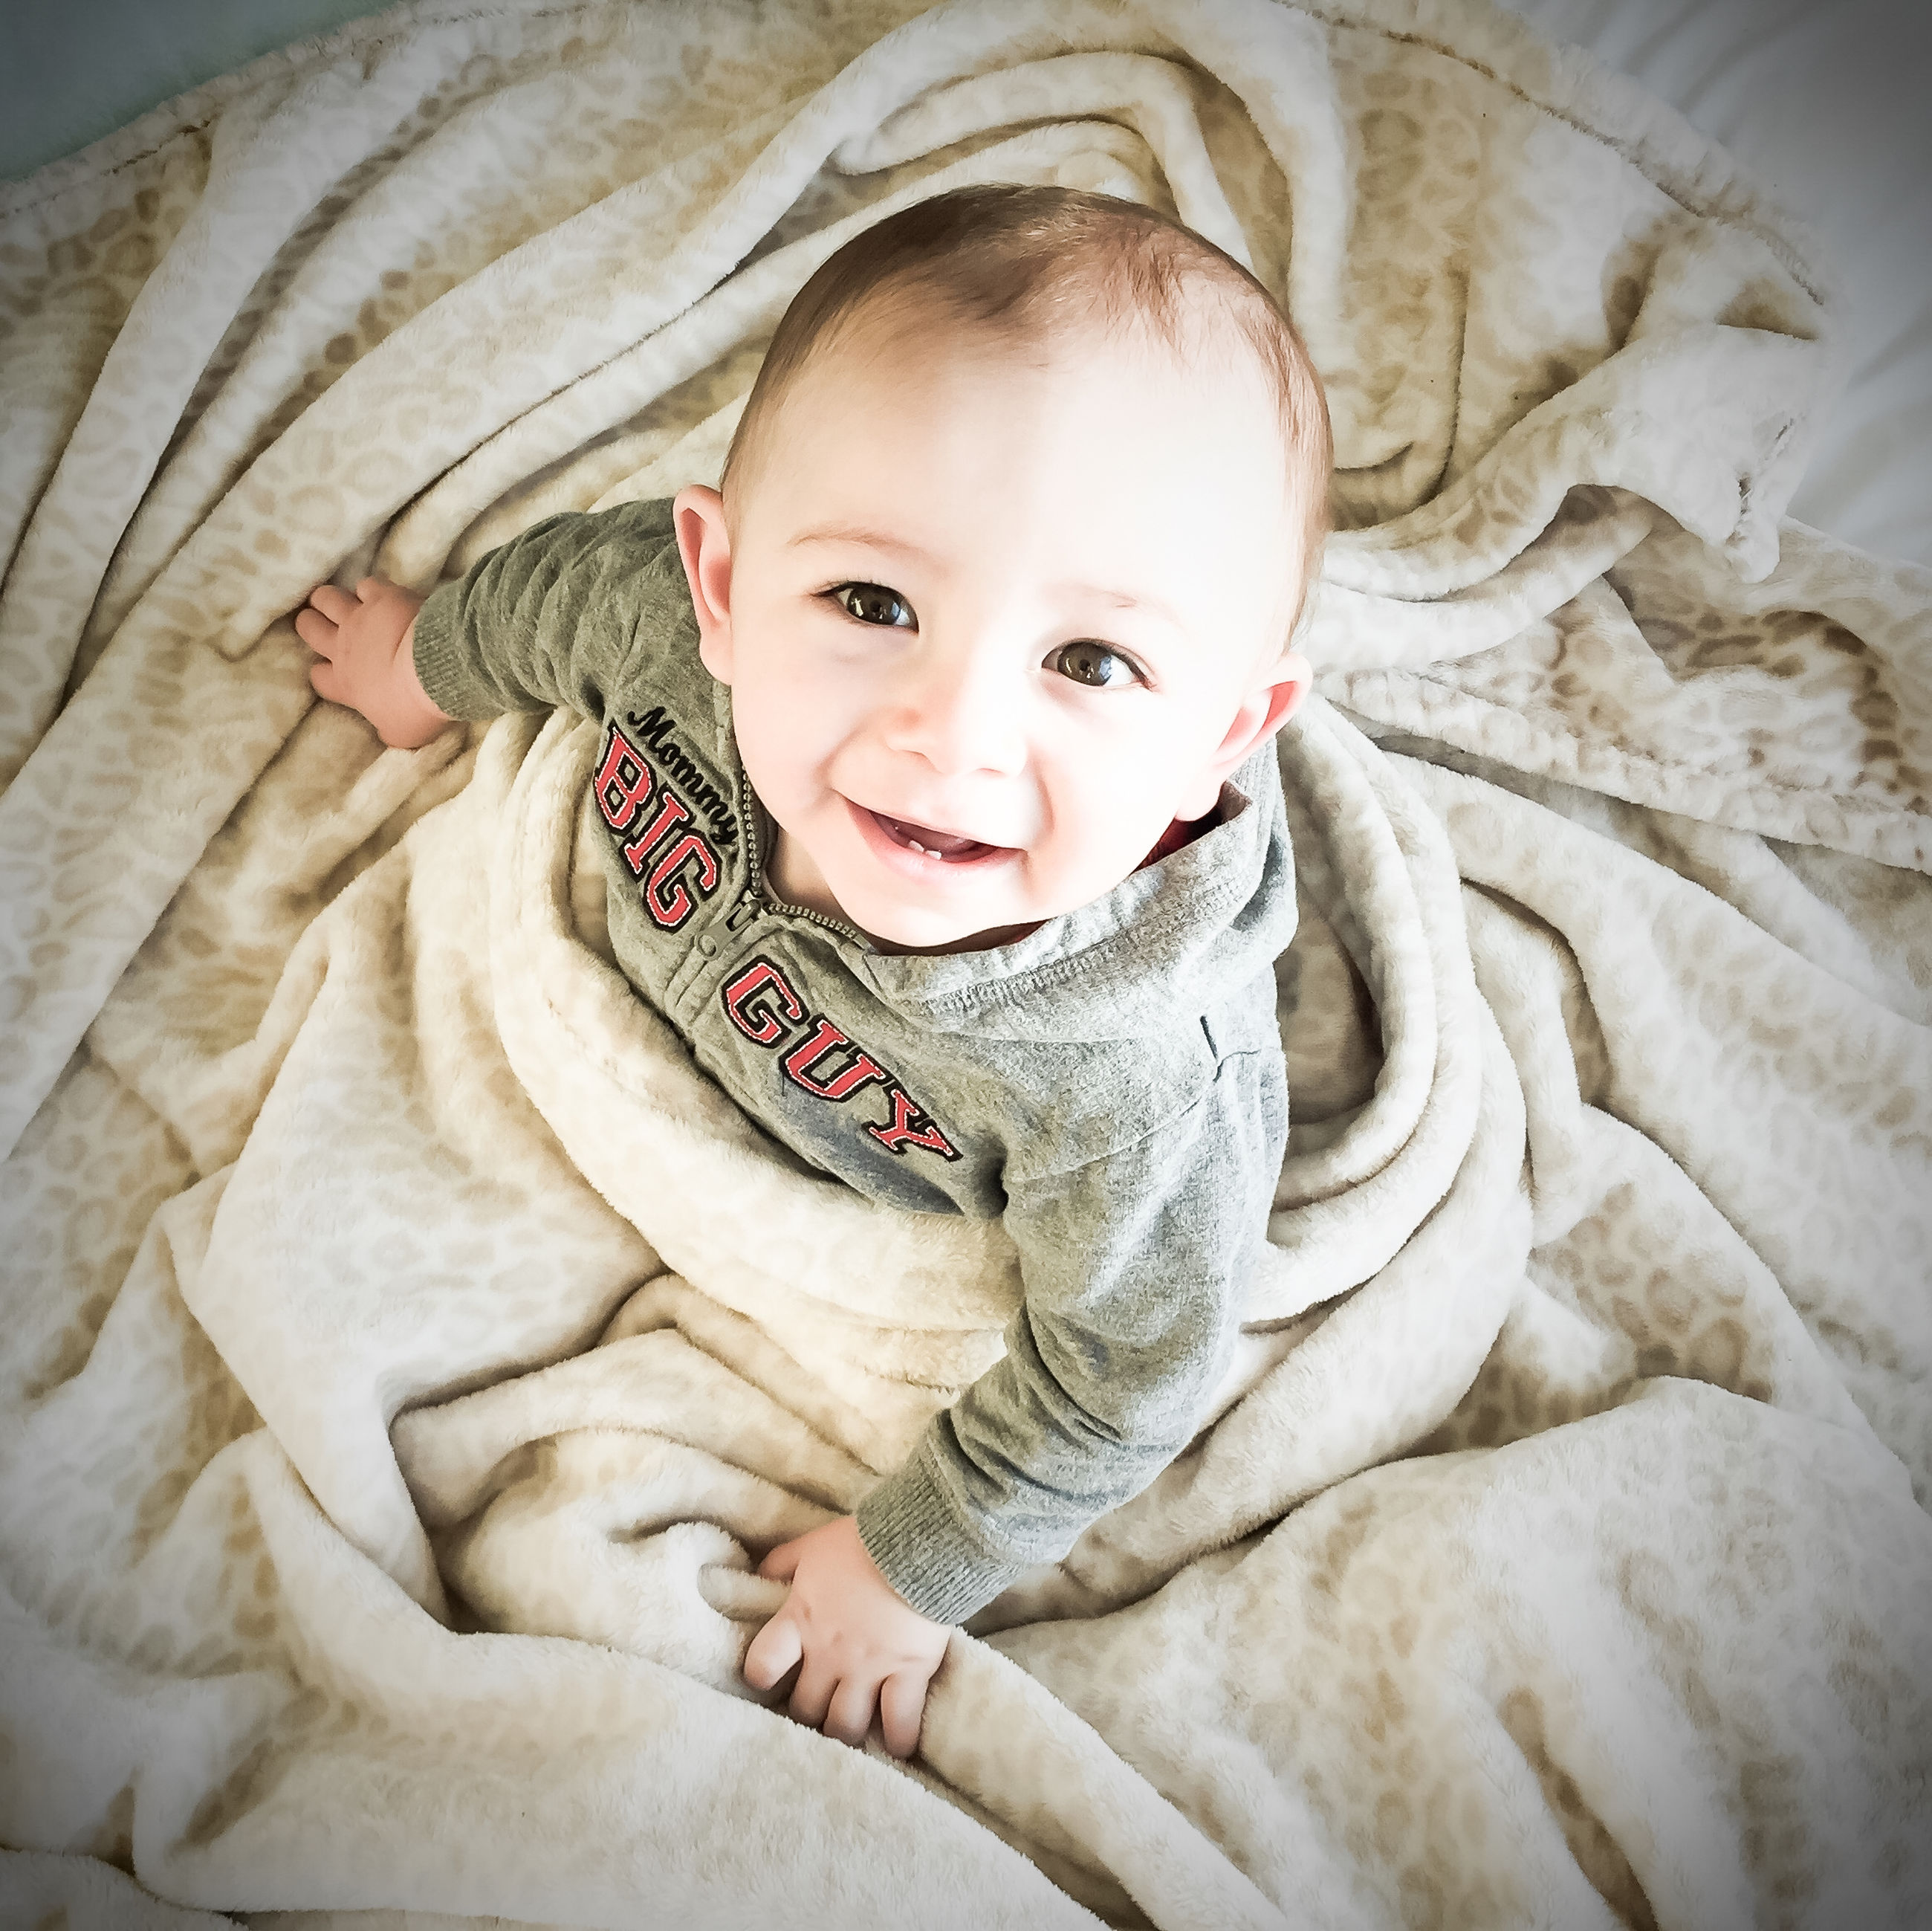 indoors, bed, relaxation, person, childhood, lying down, sleeping, cute, portrait, innocence, high angle view, looking at camera, home interior, resting, lifestyles, blanket, babyhood, toddler